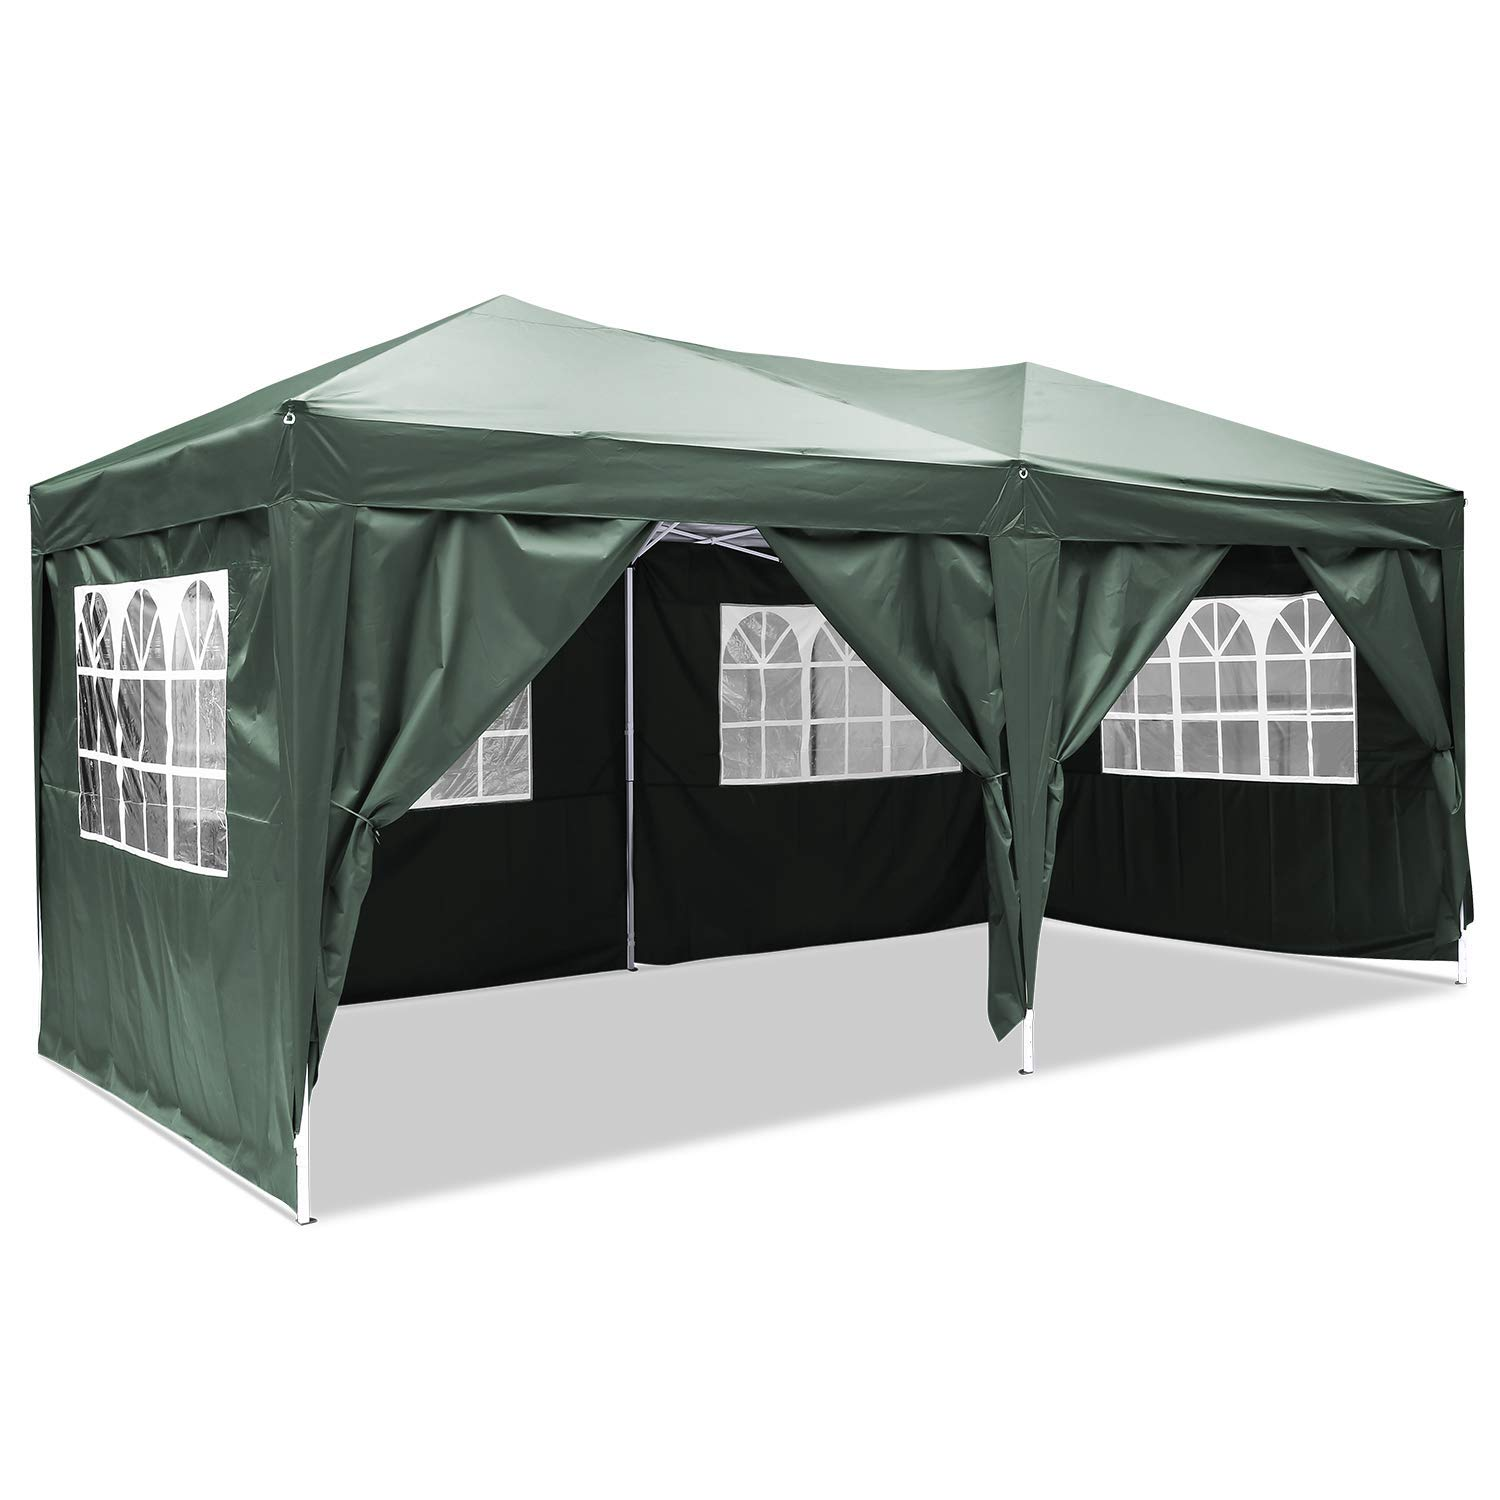 3 x 6m Marquee Tent Pop Up Gazebo Waterproof Tent Awning Marquee with Sides, Outdoor Canopy Awning Garden Party Tent